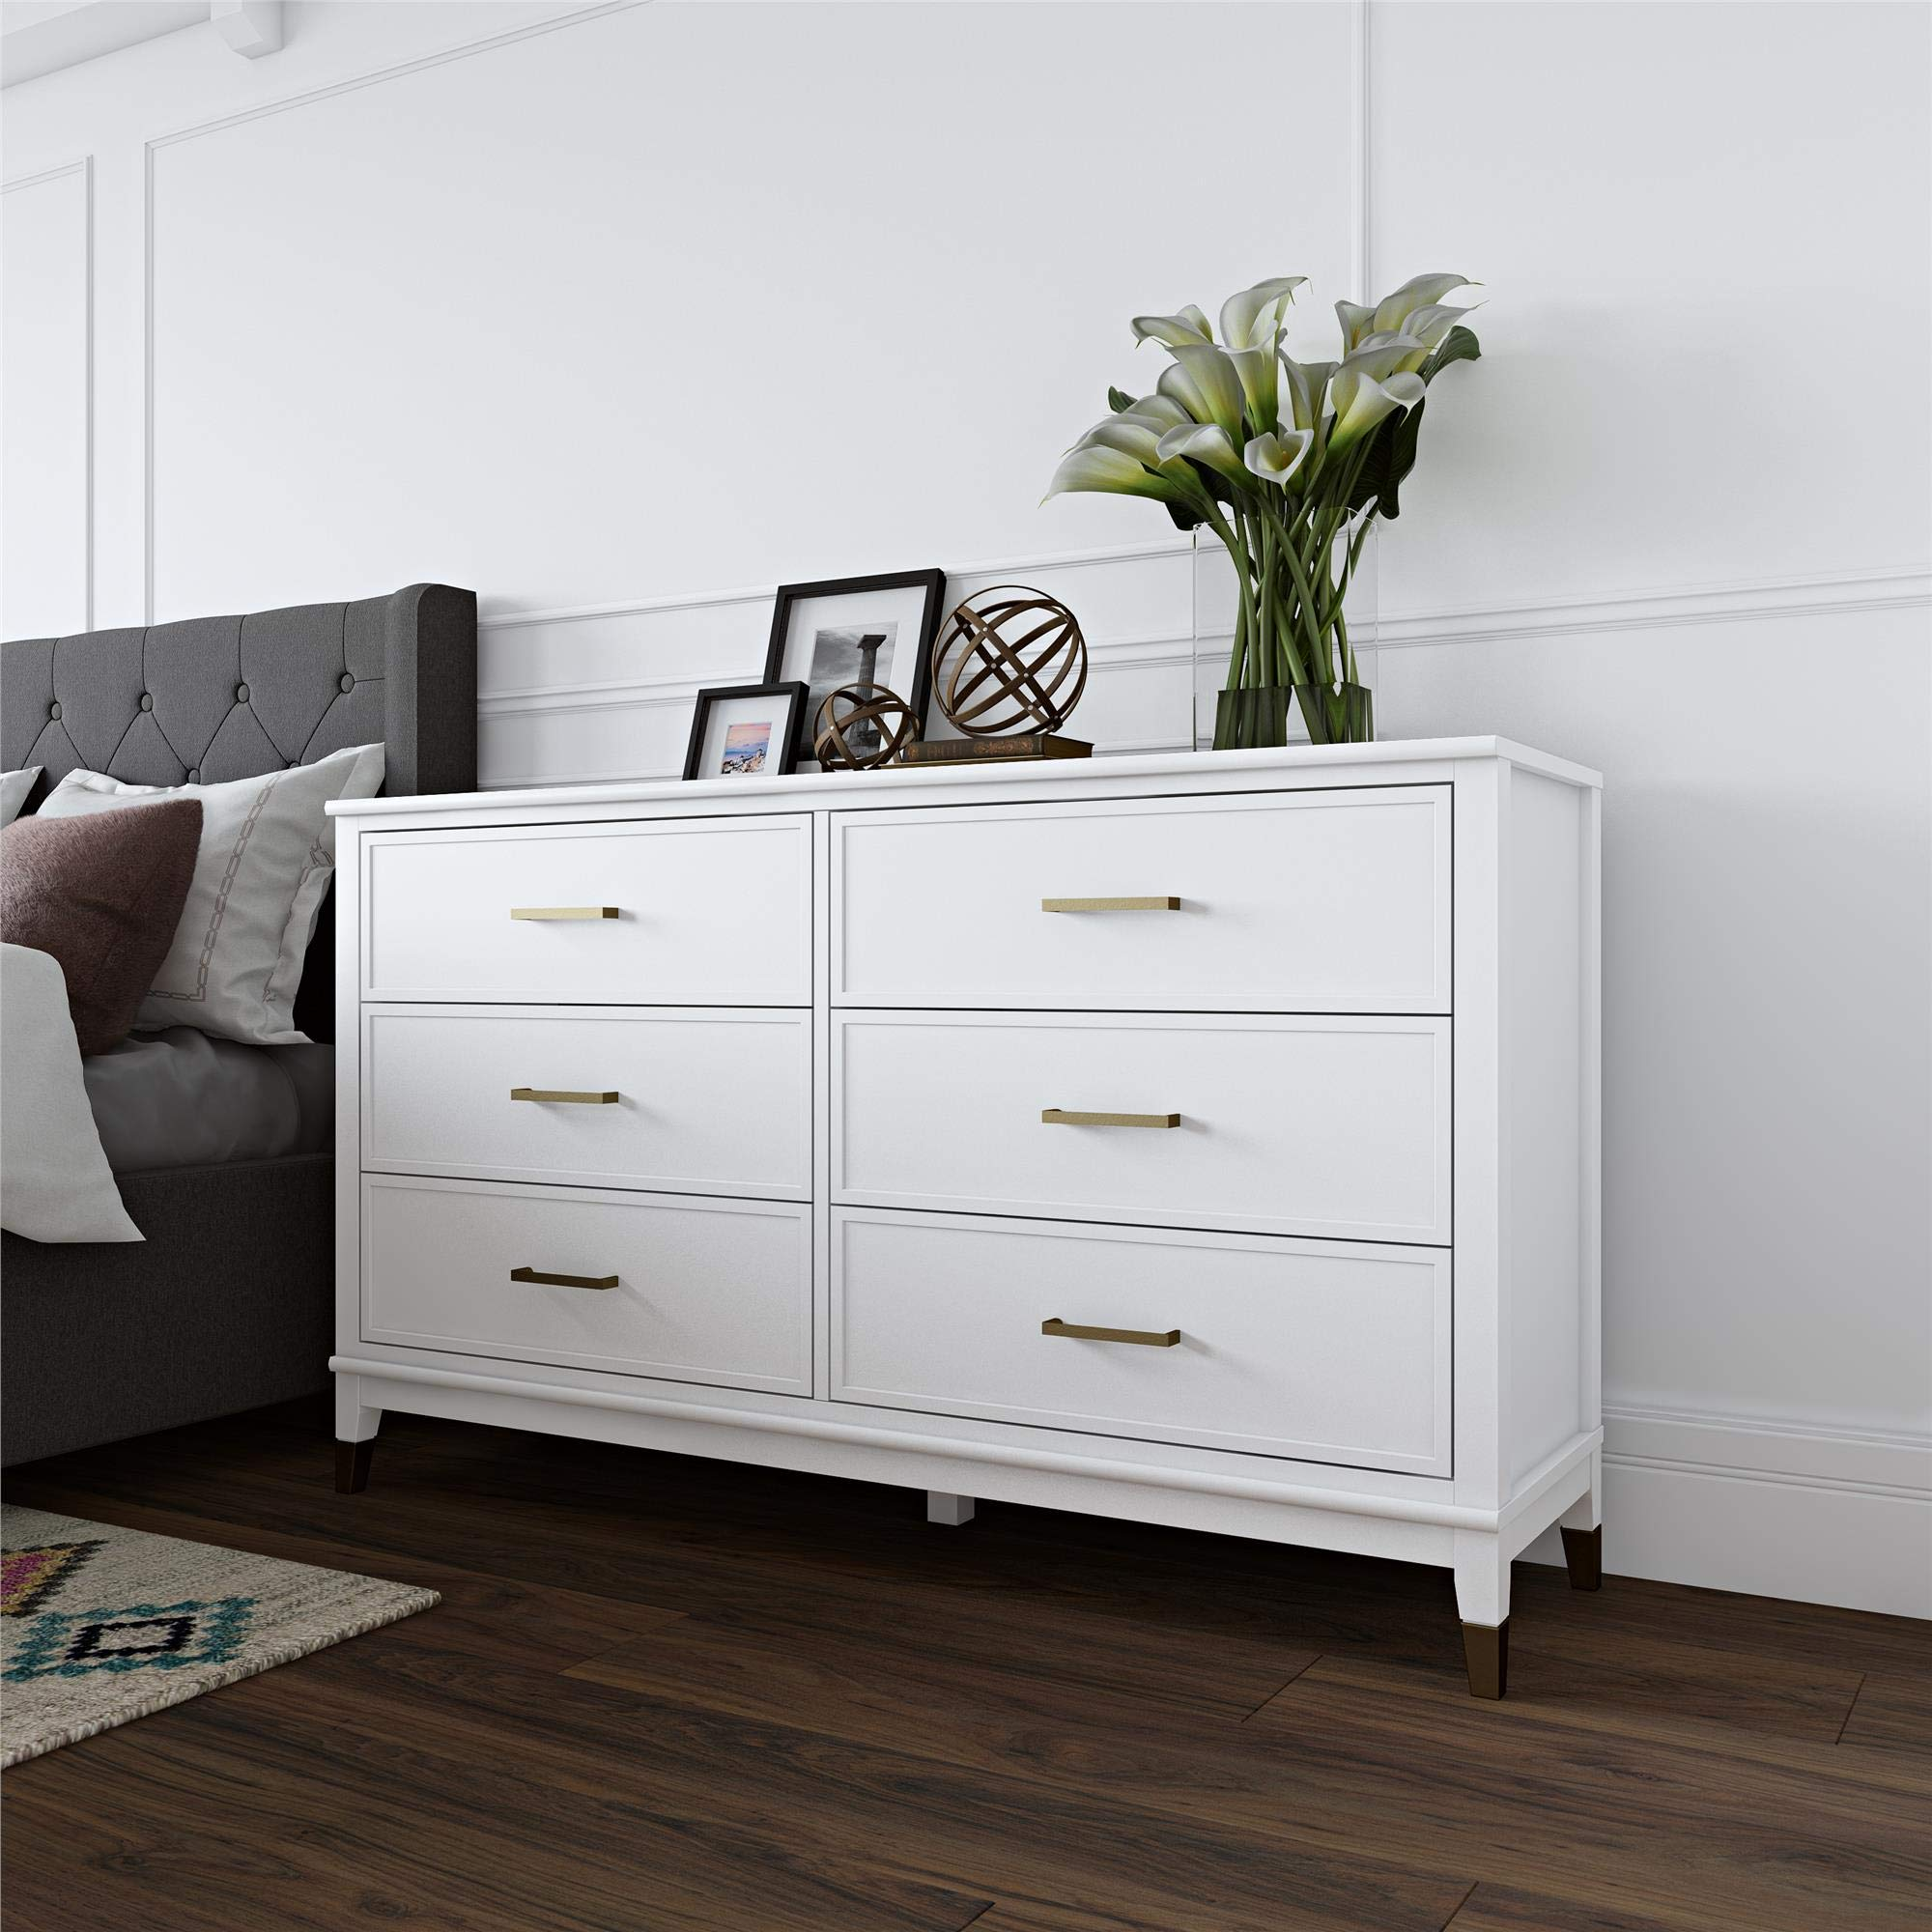 CosmoLiving Westerleigh 6 Drawer Dresser, White by CosmoLiving by Cosmopolitan